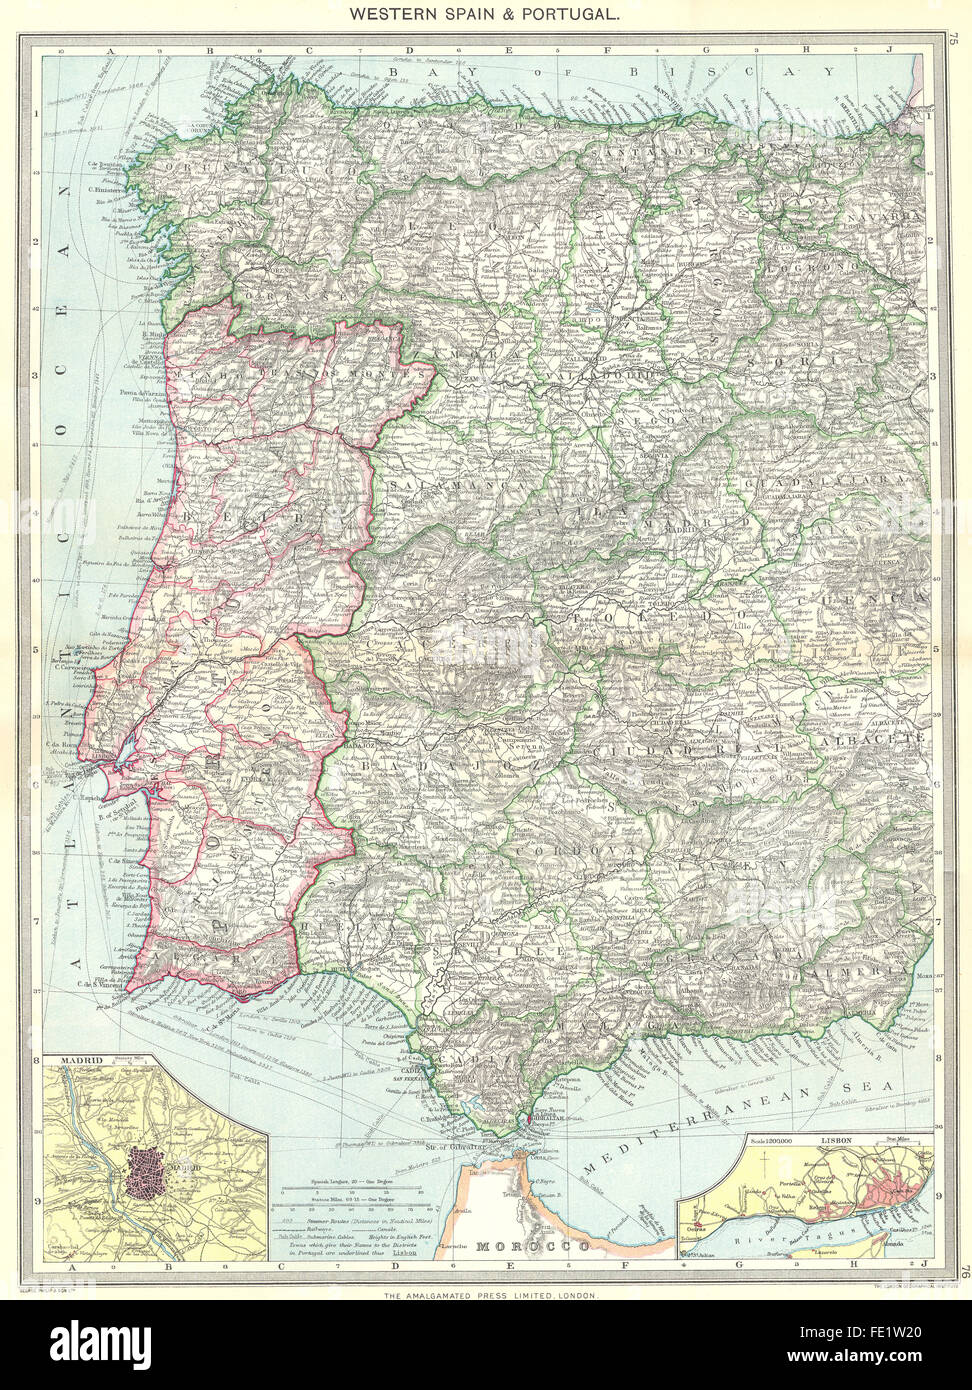 Lisbon Spain Map.Spain Western Portugal Map Of Madrid Lisbon 1907 Stock Photo